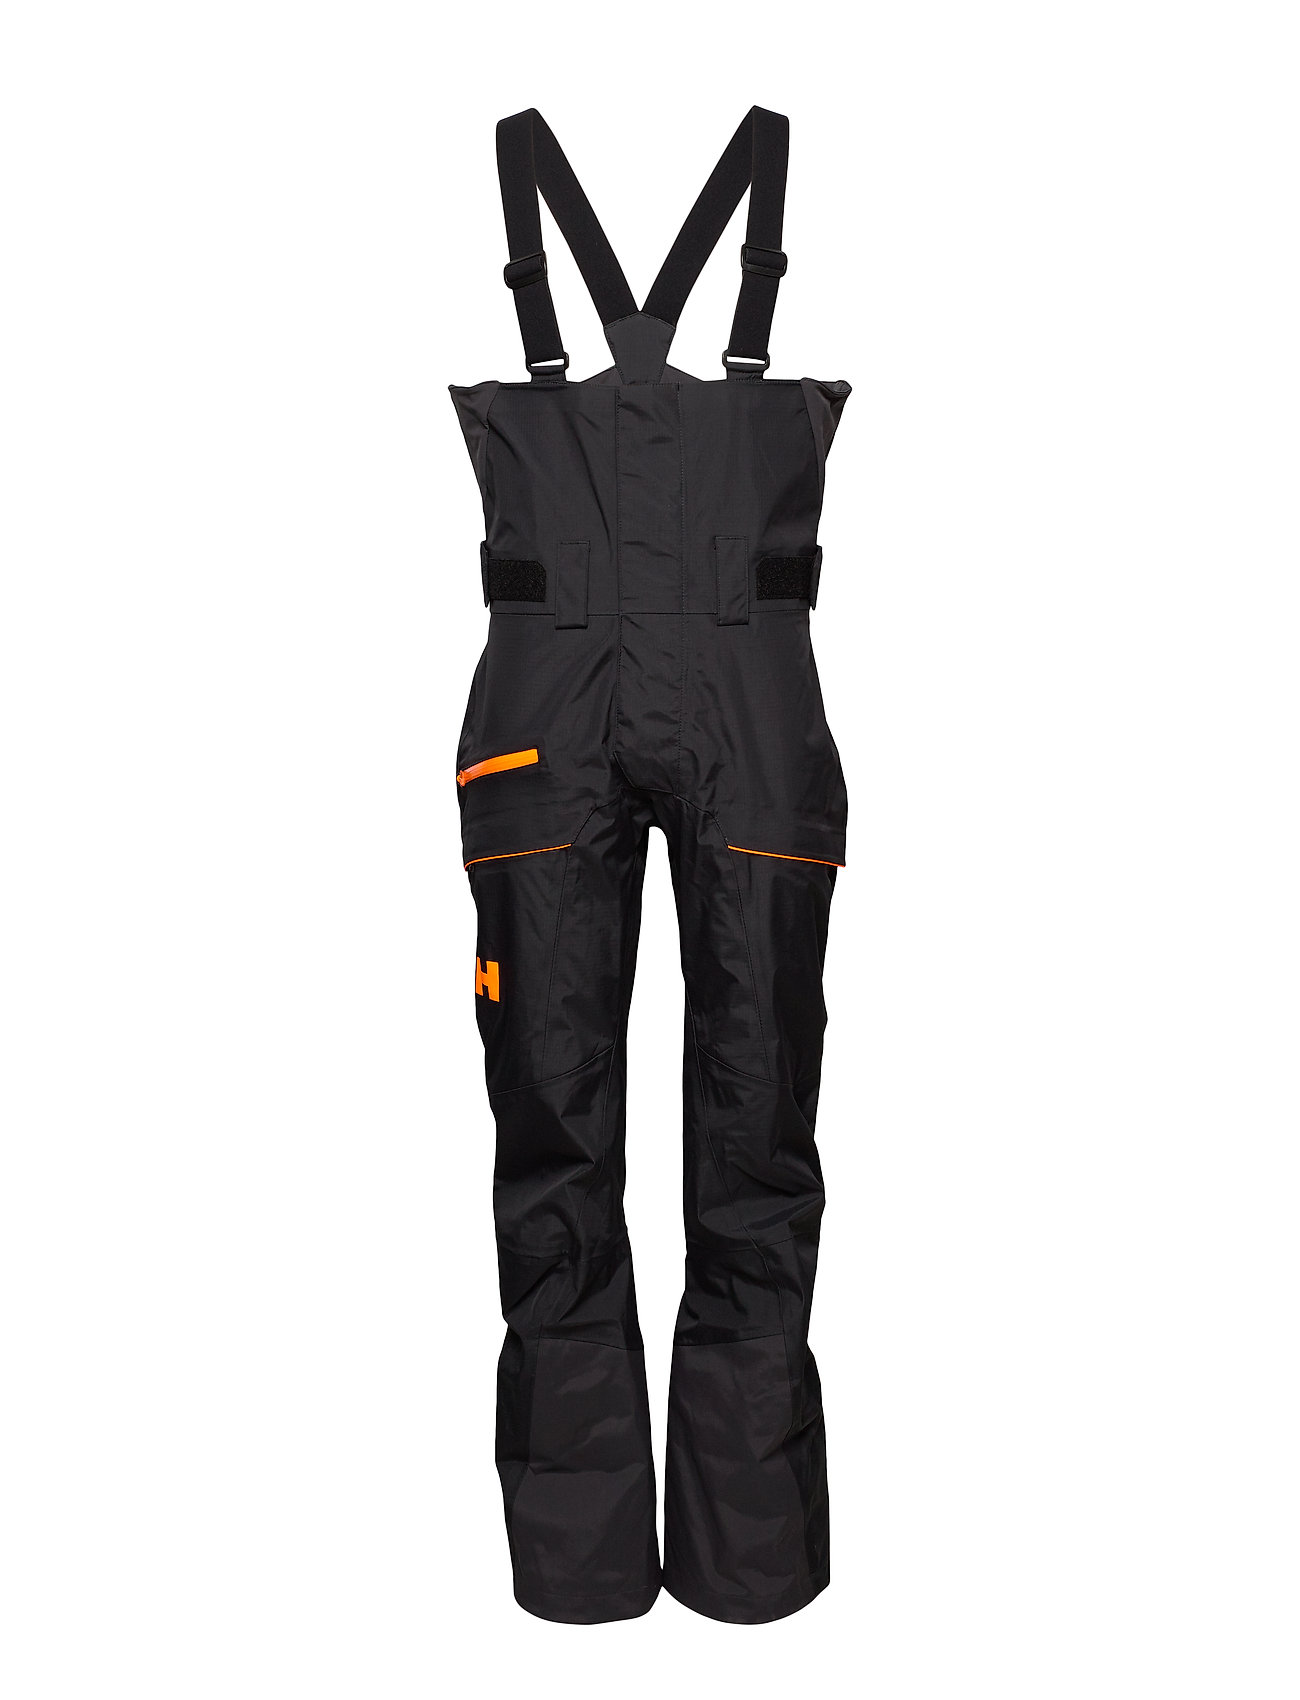 Helly Hansen SOGN BIB SHELL PANT - BLACK